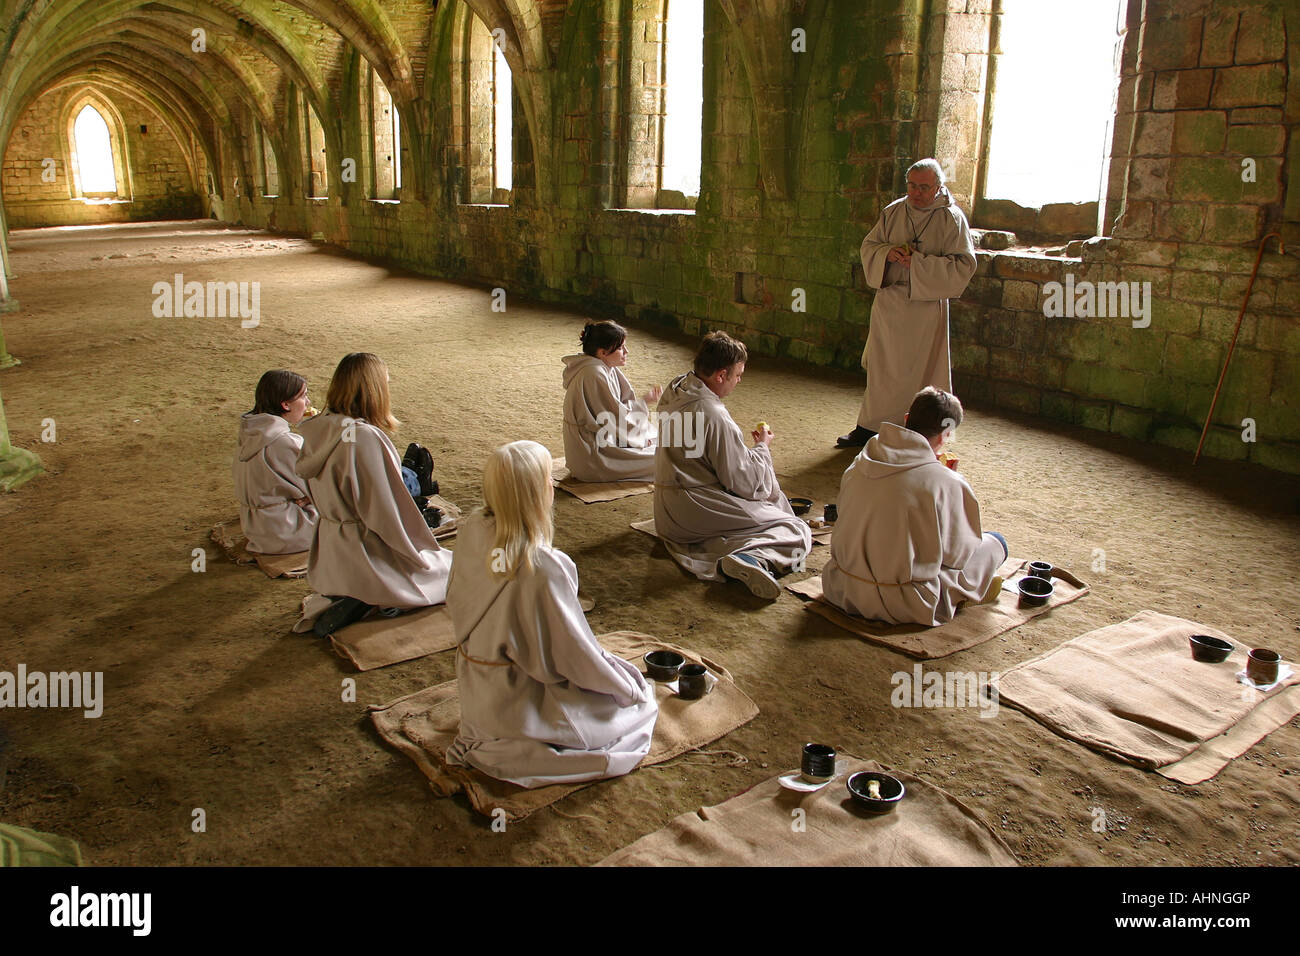 UK Yorkshire Ripon Fountains Abbey Its A Monks Life in Lay Brothers Refectory Stock Photo